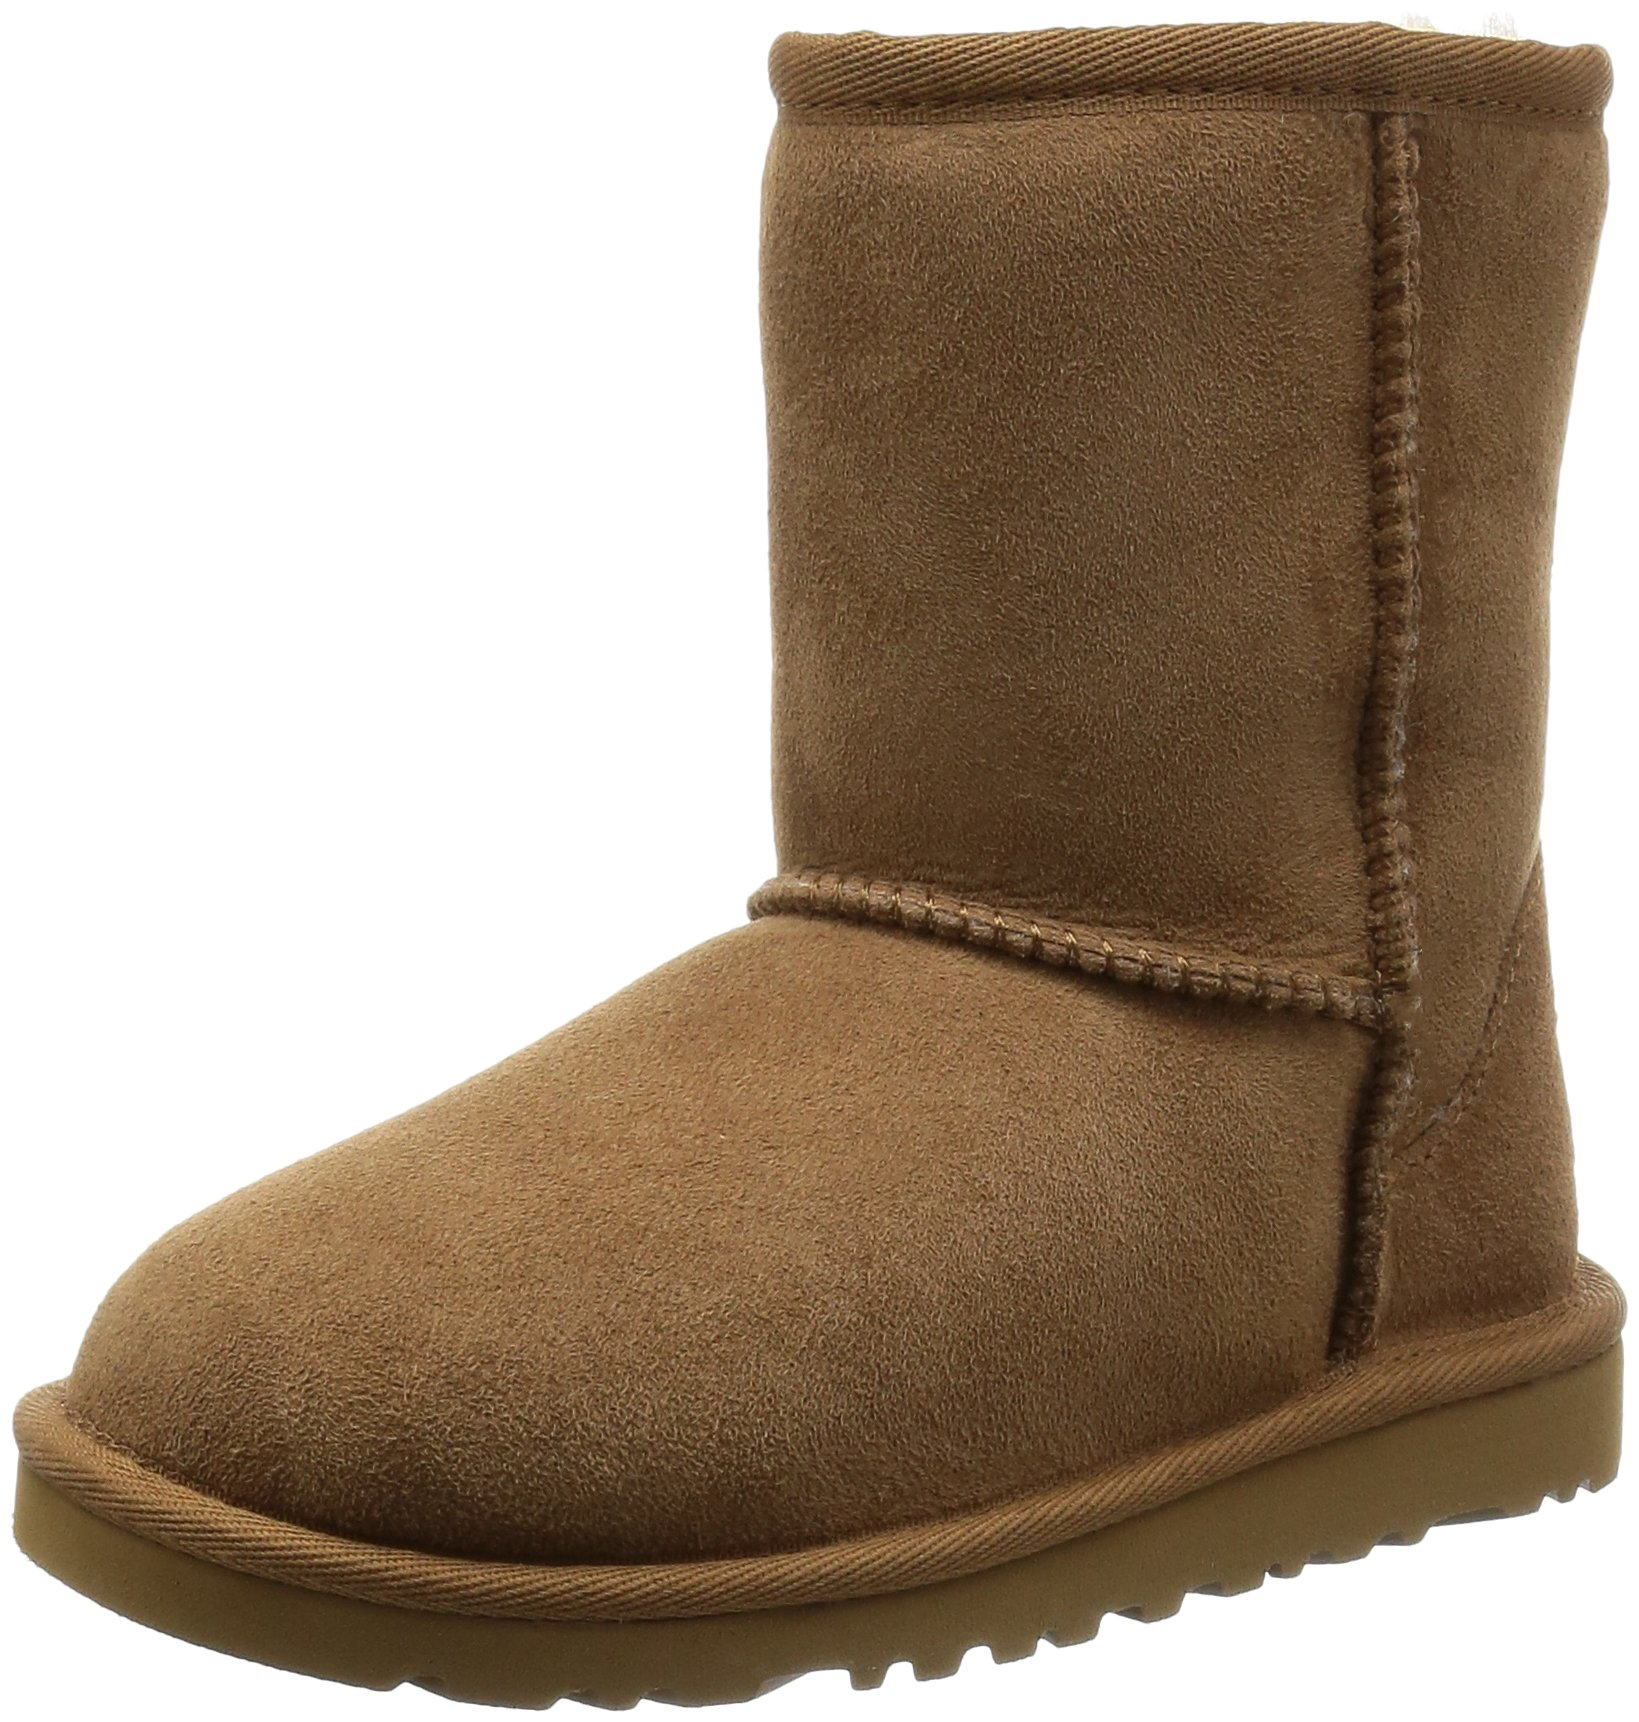 New UGG® Australia Classic Short Chestnut 7 Toddler Boots